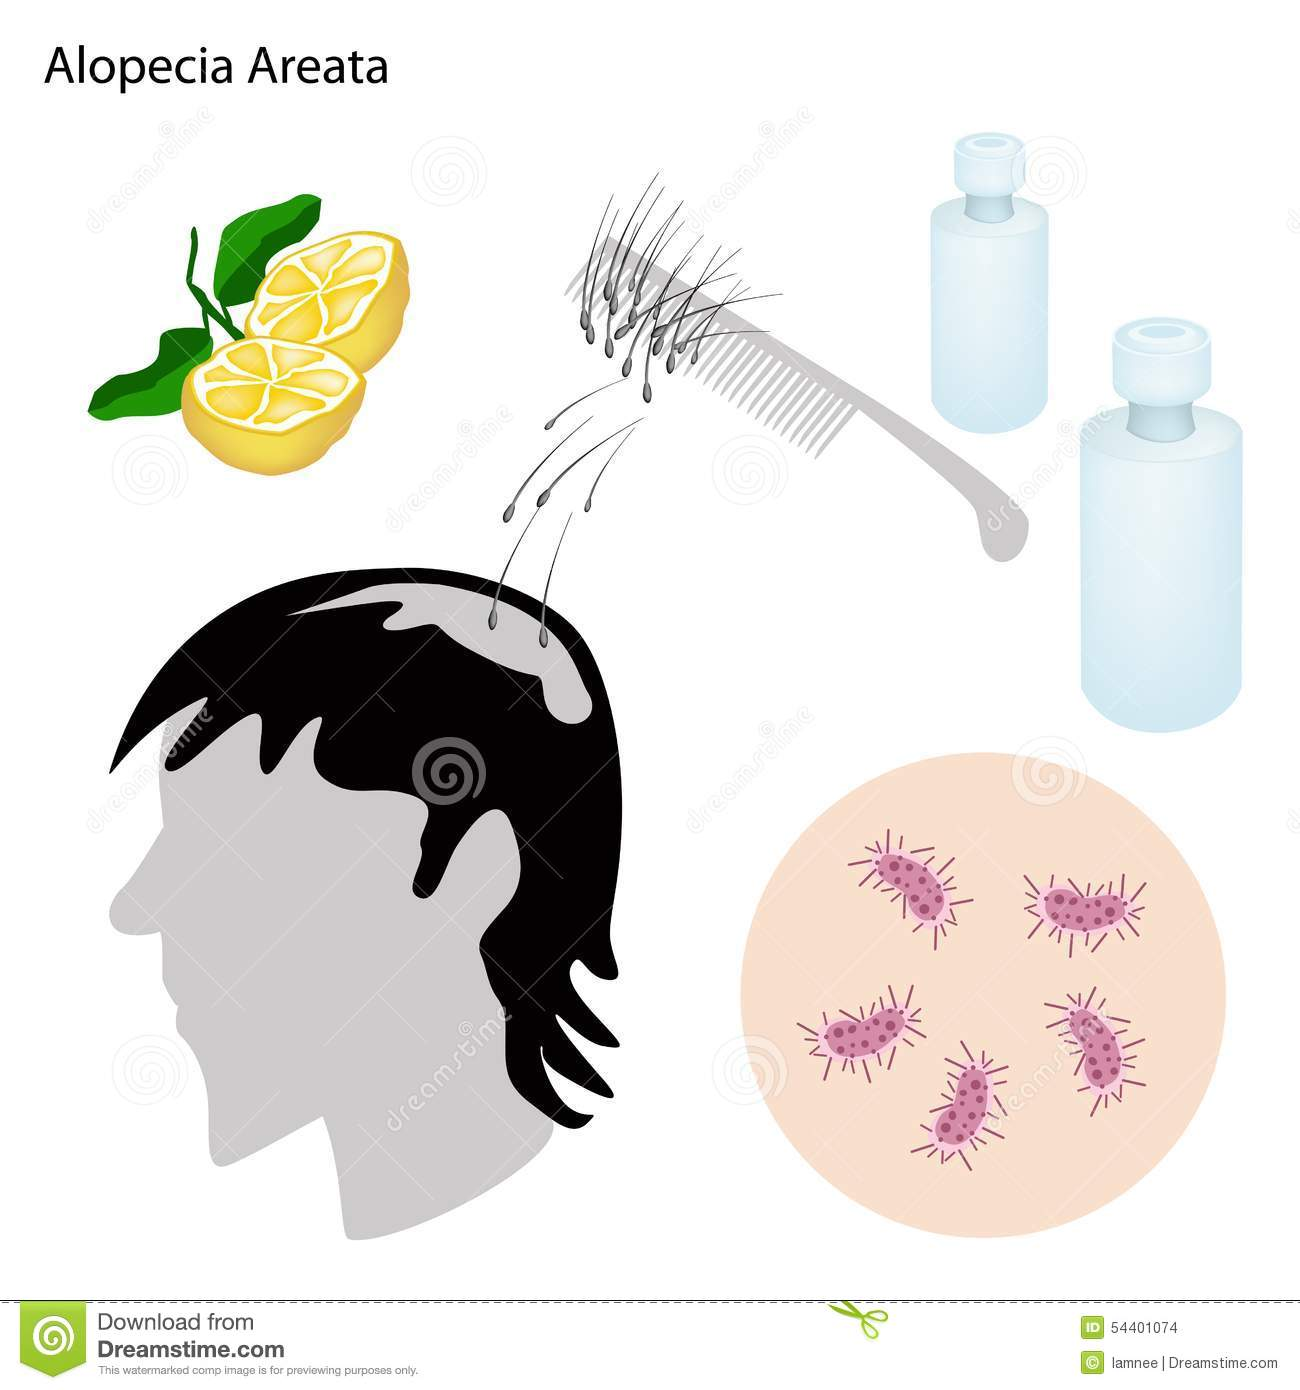 an introduction to the issue of alopecia areata Alopecia areata has been reported to be associated with multiple comorbid conditions, including vitiligo, lupus erythematosus, psoriasis, atopy, thyroid disease, and mental health problems 1,3,5,12,13,24-31 most of these studies are limited by small population size, homogeneous populations, or patient self-reported data.